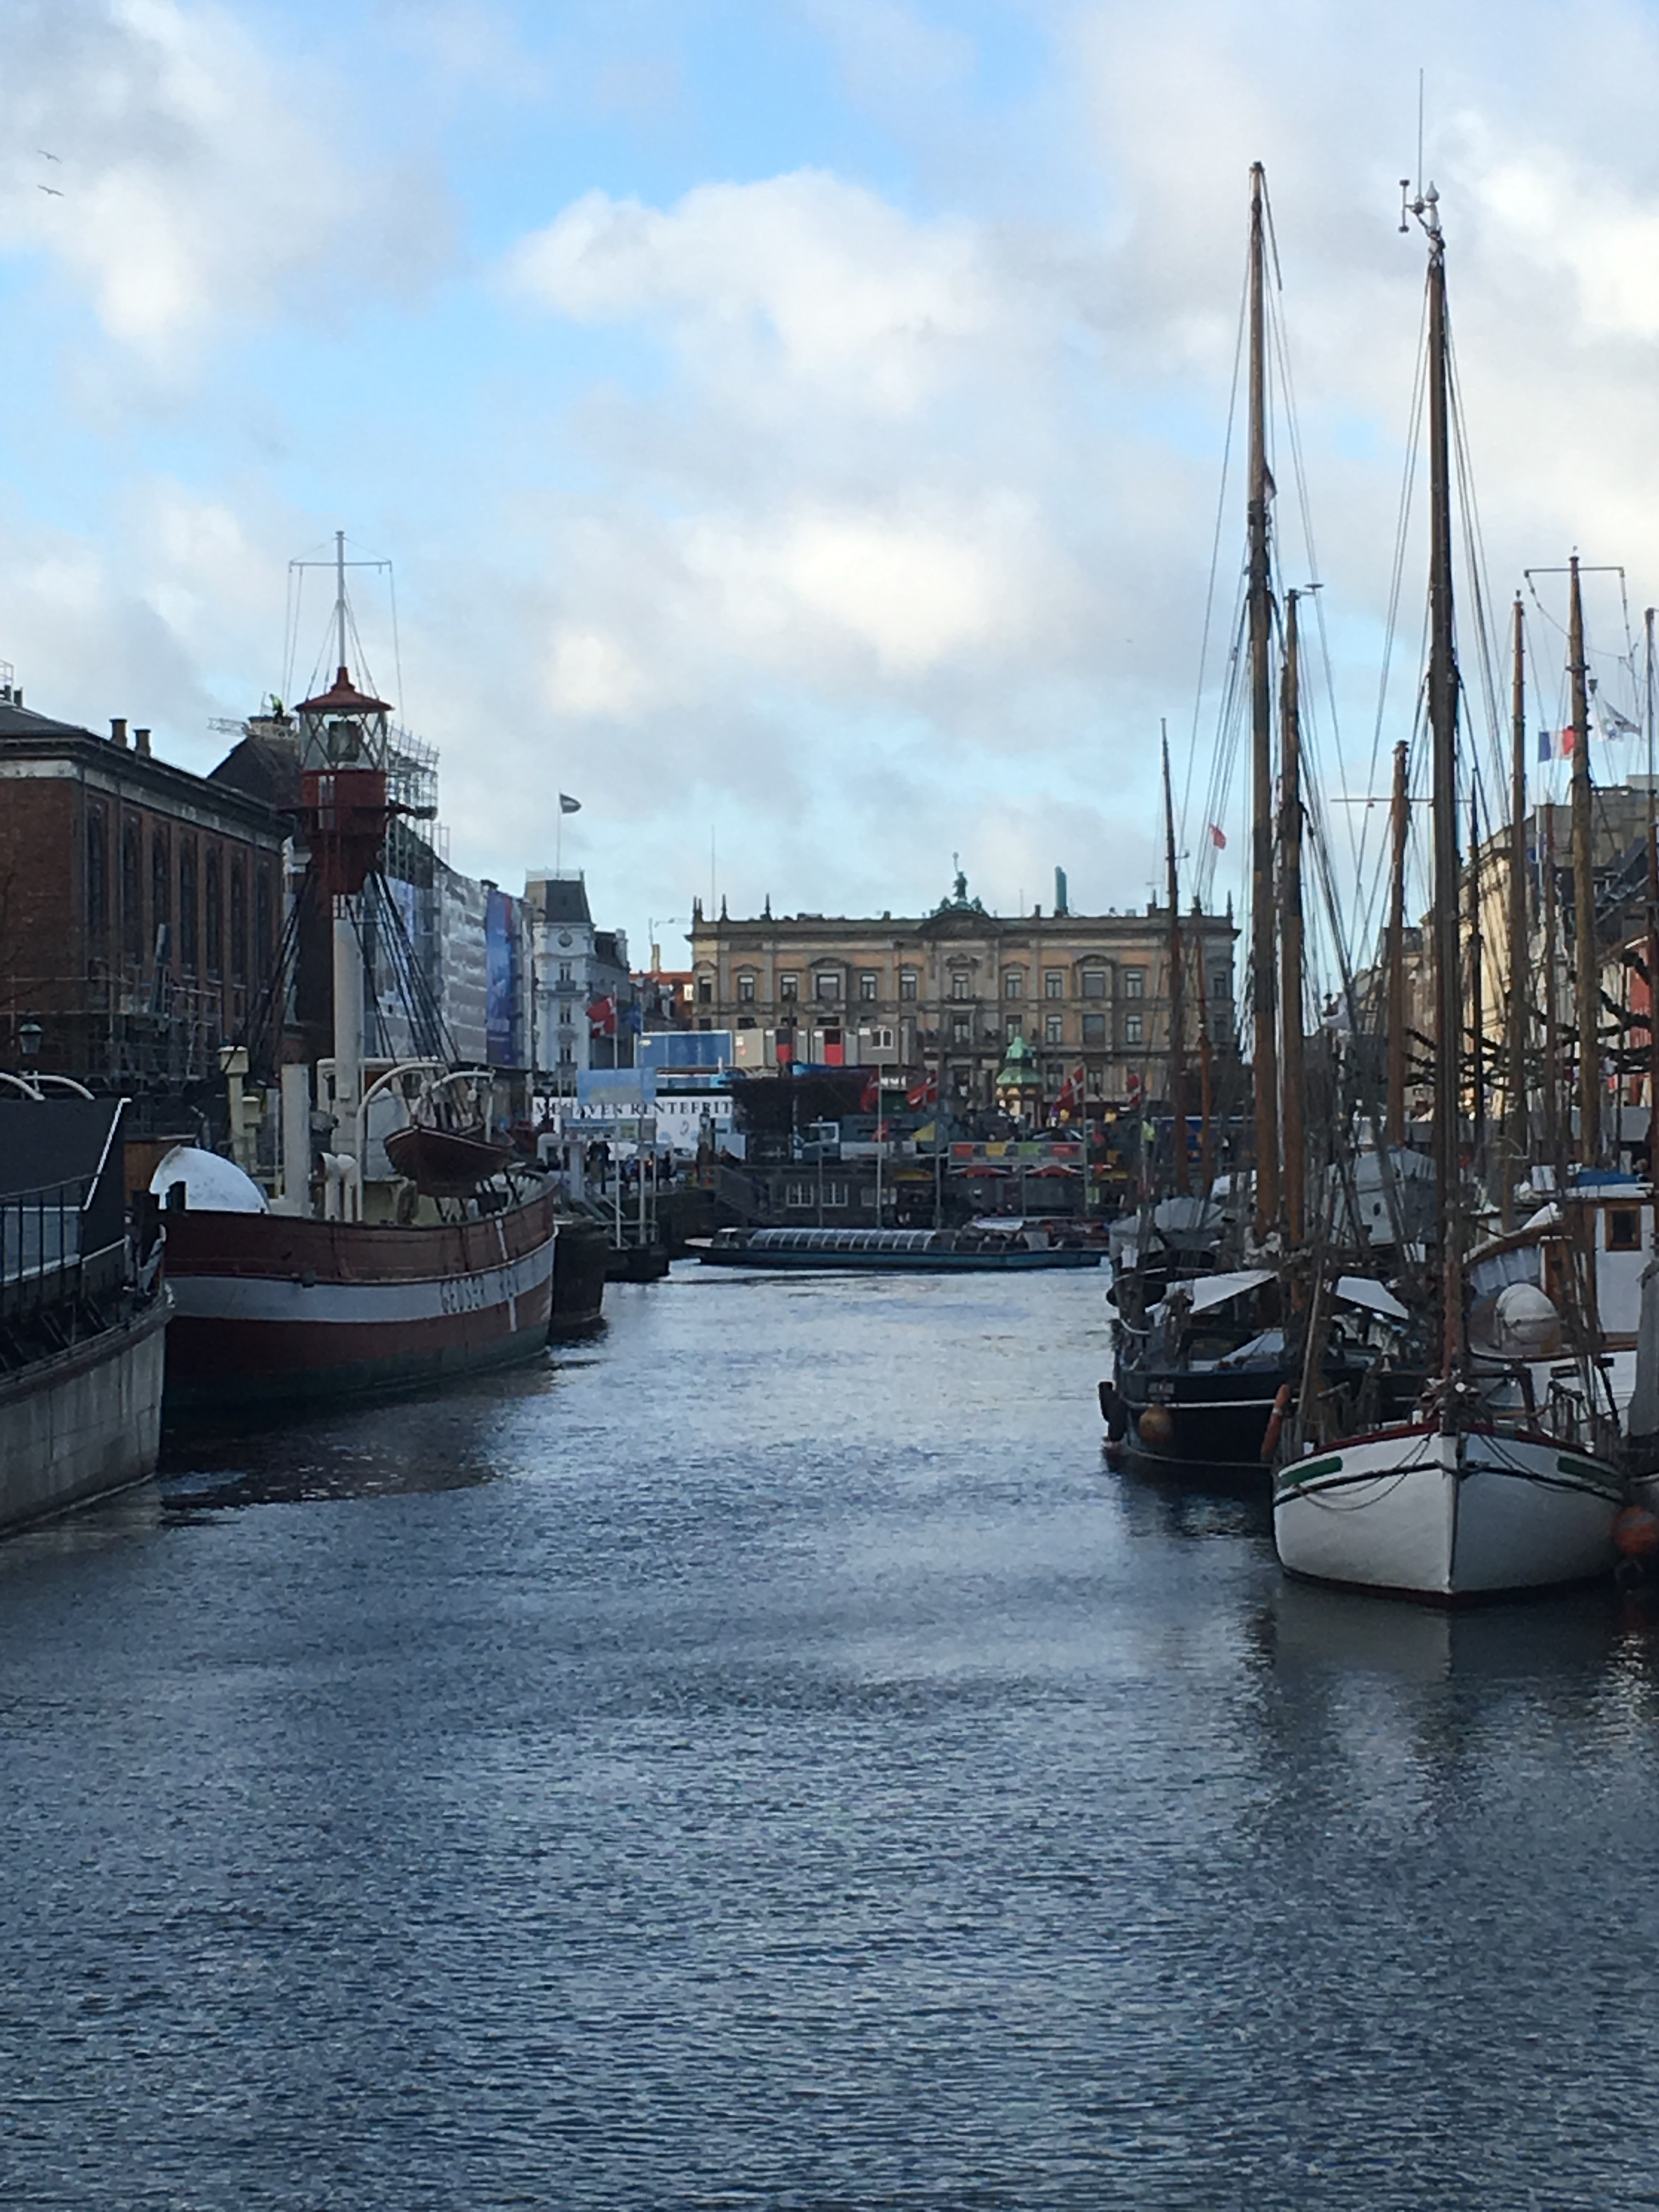 Image of Nyhavn Canal